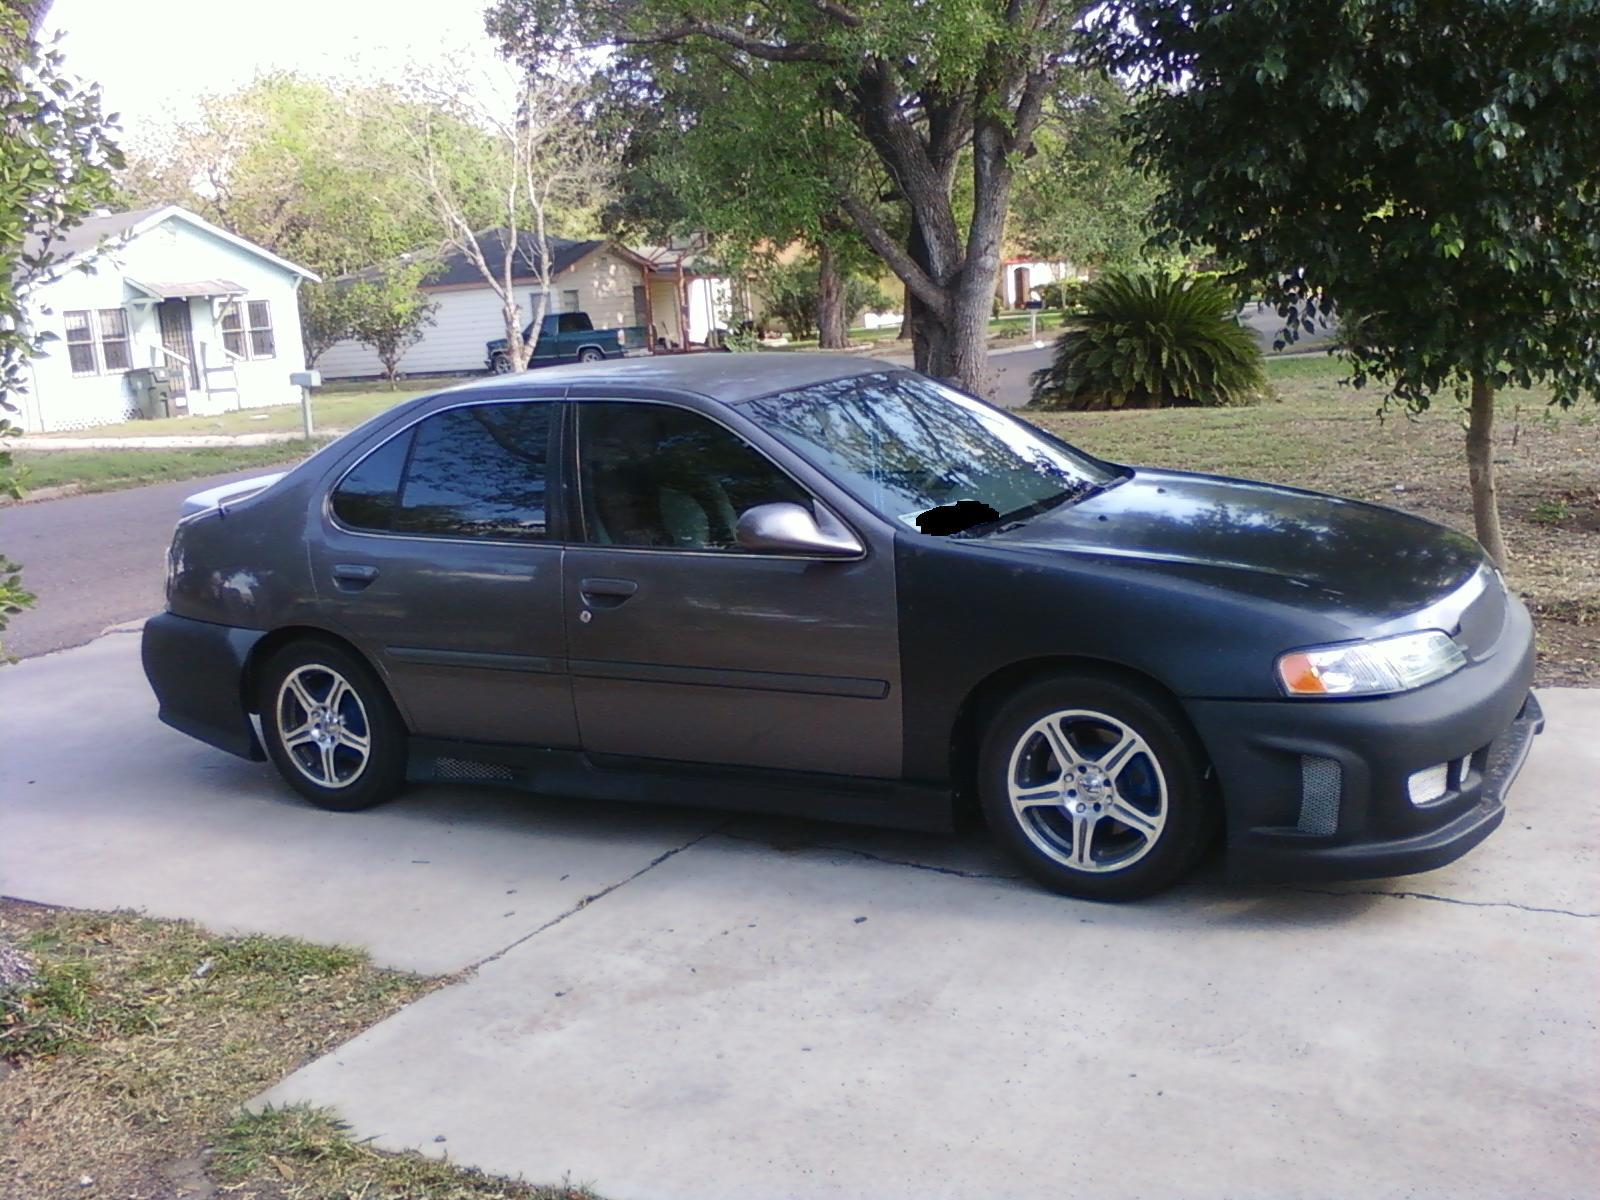 txdb031786 1998 nissan altima specs, photos, modification info at